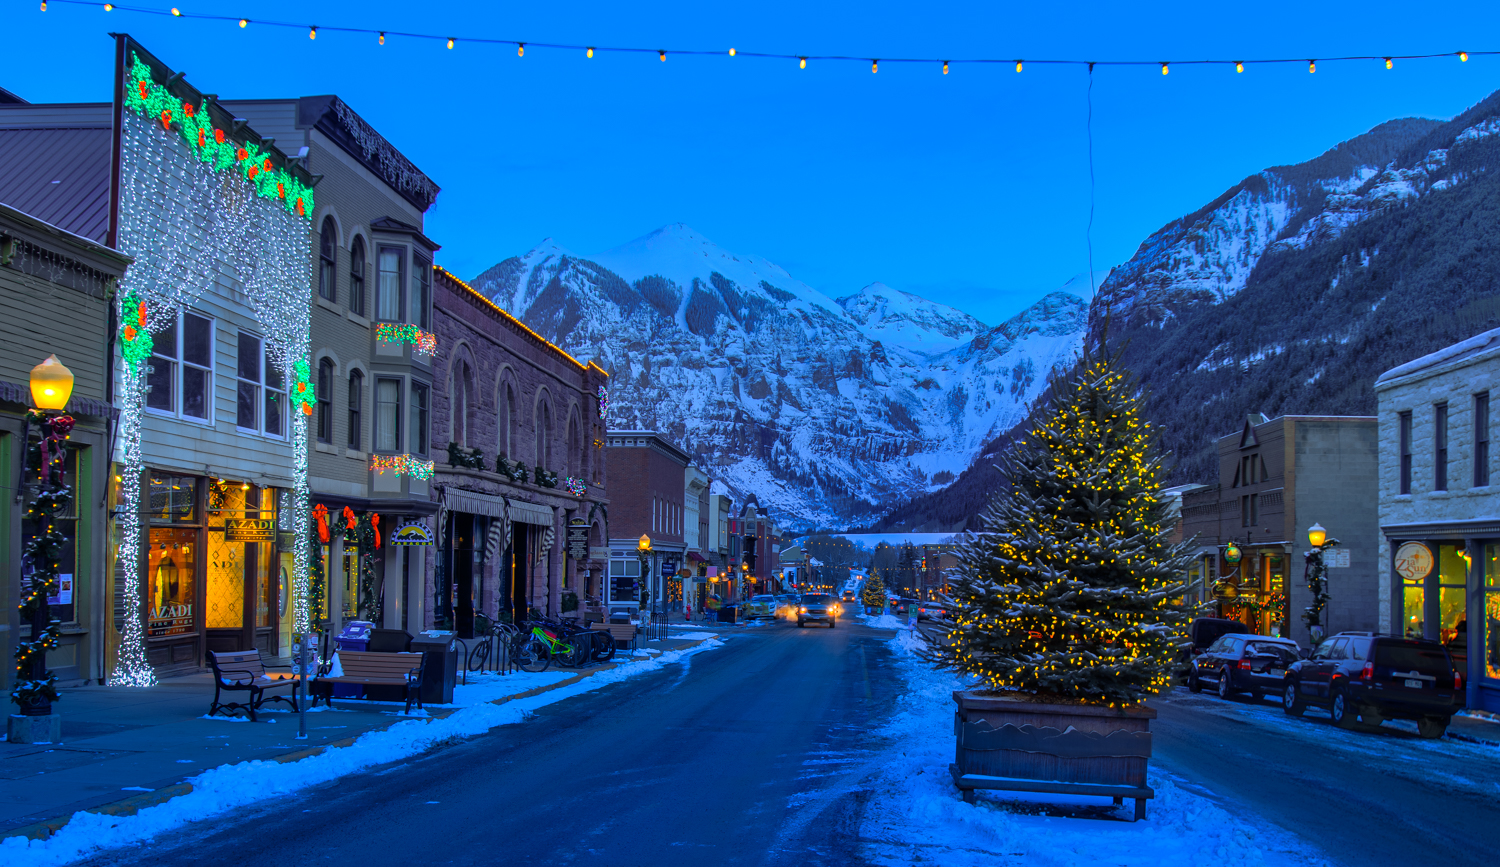 View of Main Street in Telluride with Christmas Lights